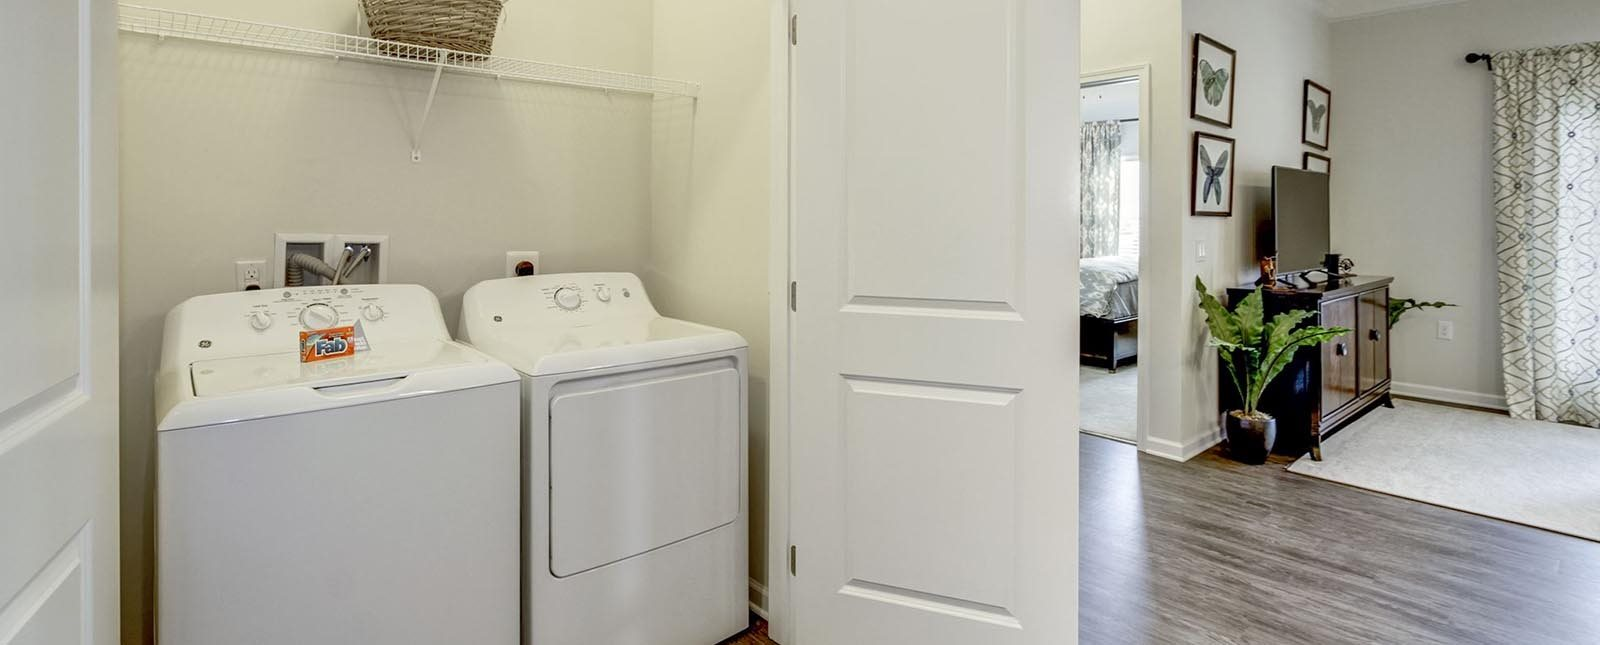 Washer and Dryer at The Haven luxury apartments in Malvern, PA